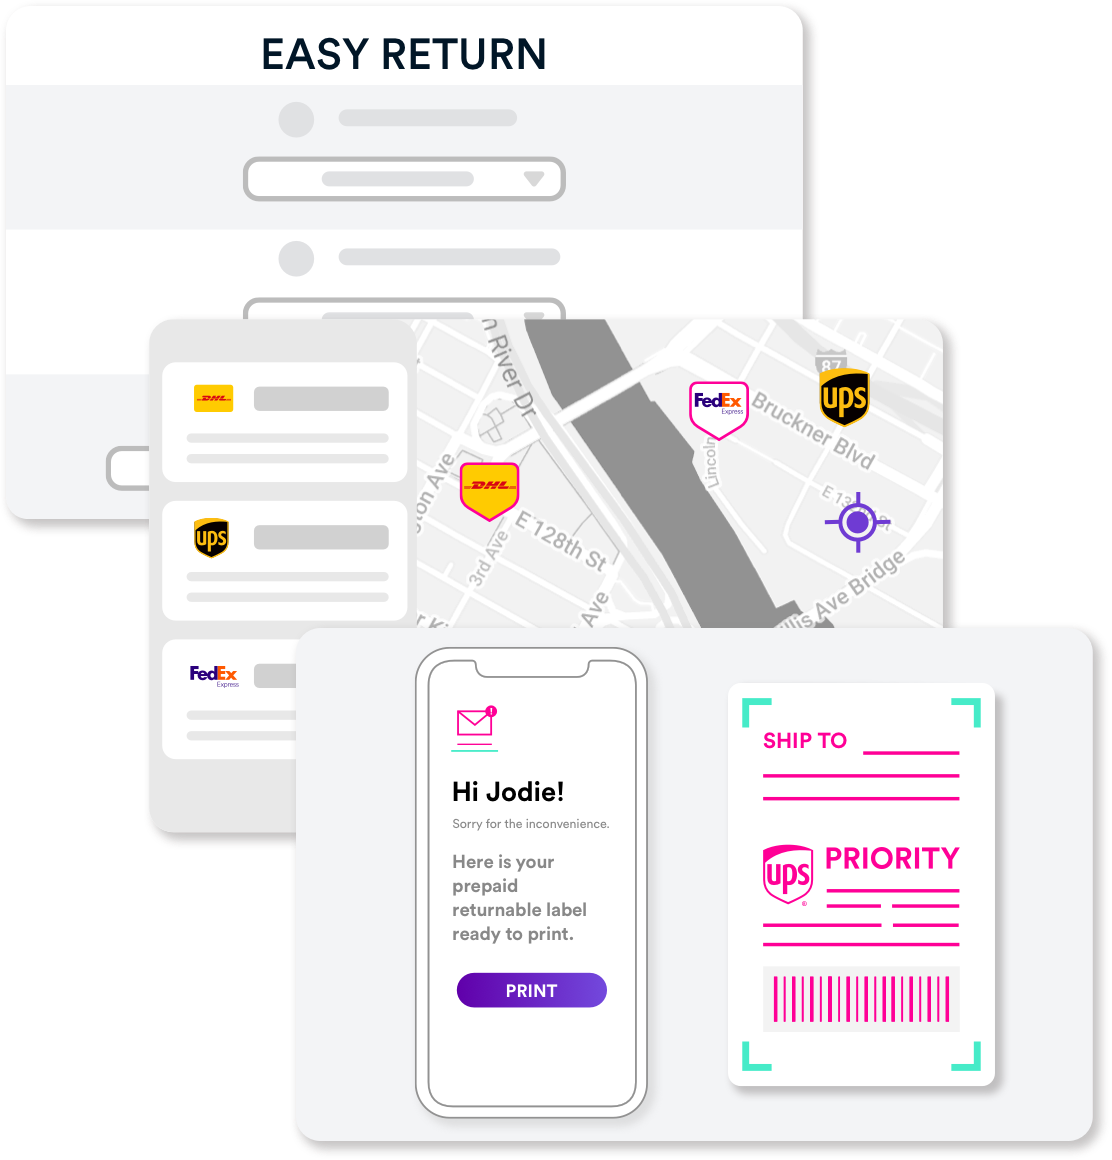 Optimize your returns management process with a combination of Easy Return and Live Checkout modules